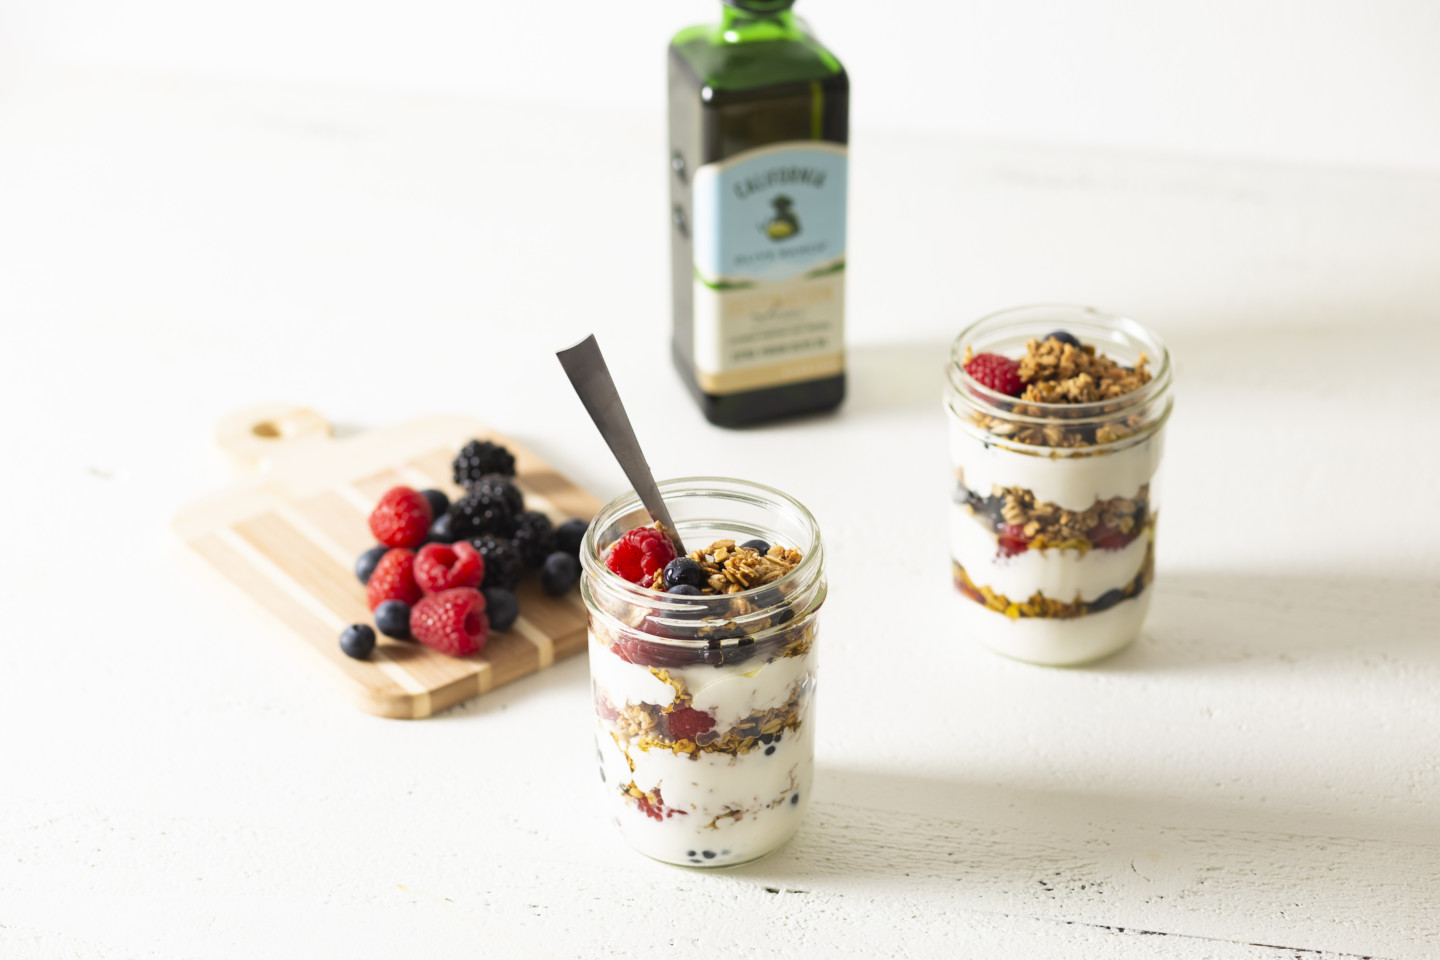 Two open jars of yogurt parfaits next to a bottle of California Olive Ranch Everyday Olive Oil and a chopping board with a selection of blueberries, raspberries, and blackberries.